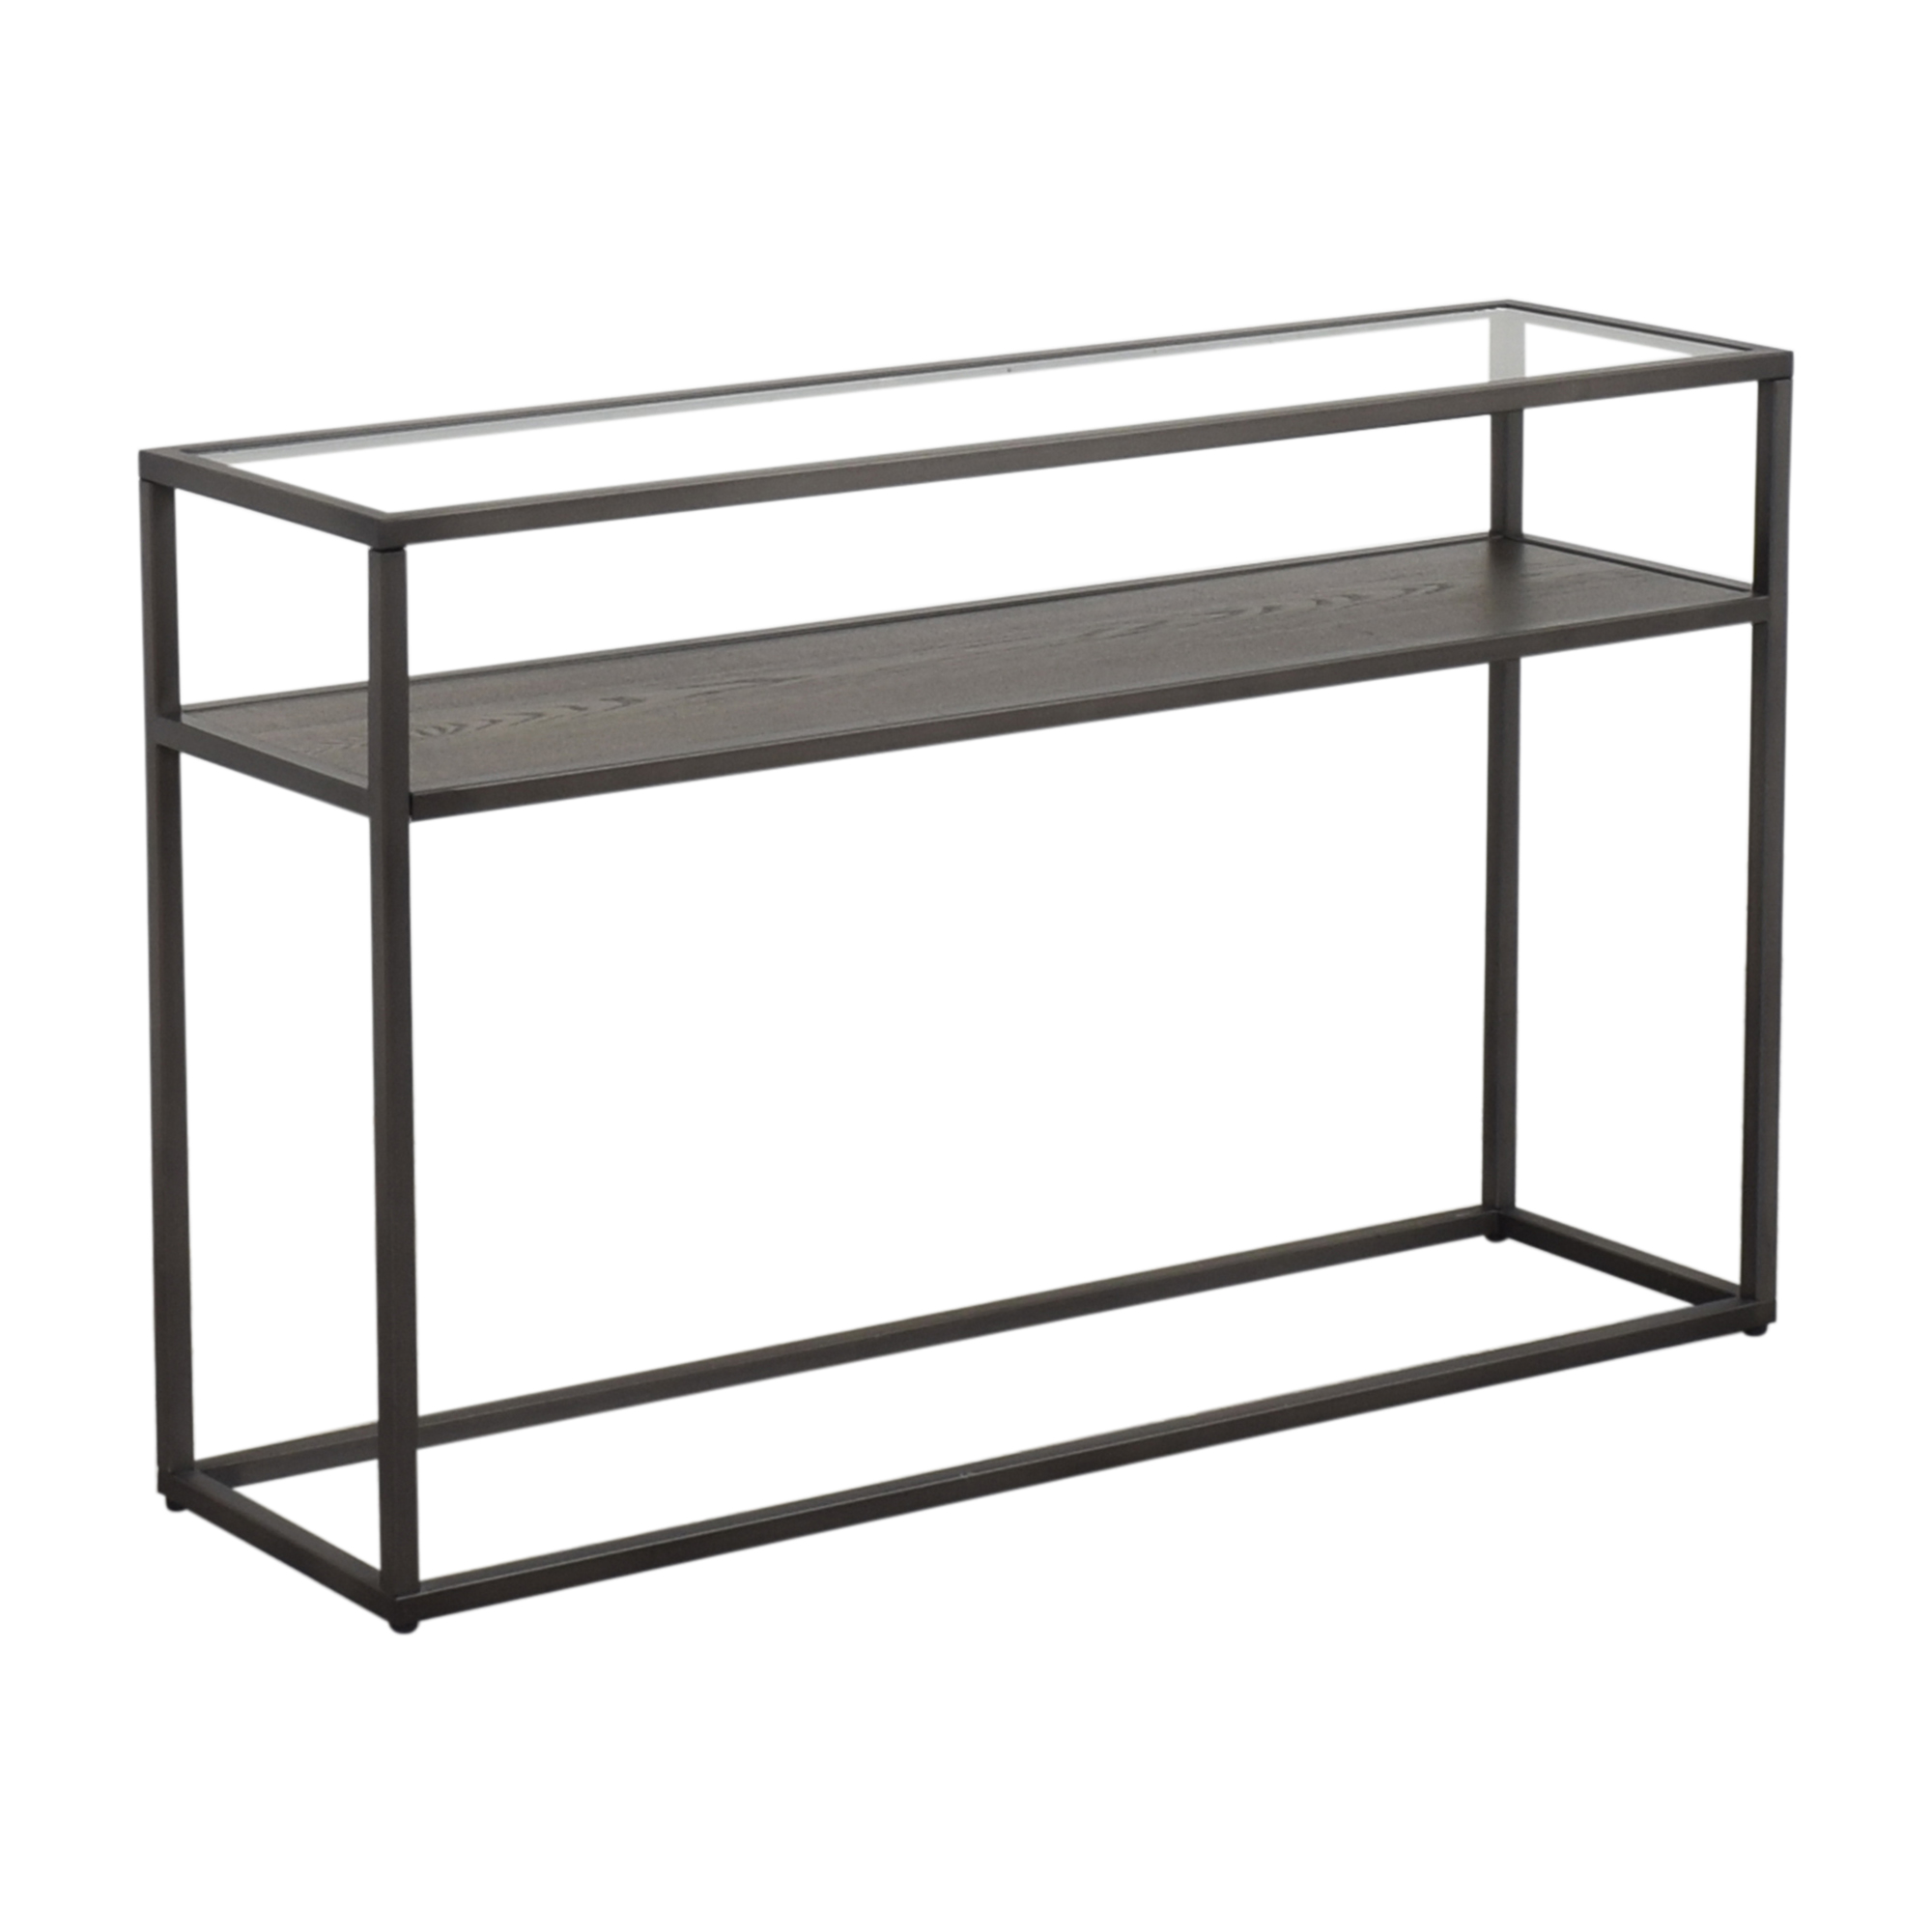 shop Crate & Barrel Switch Console Table Crate & Barrel Accent Tables